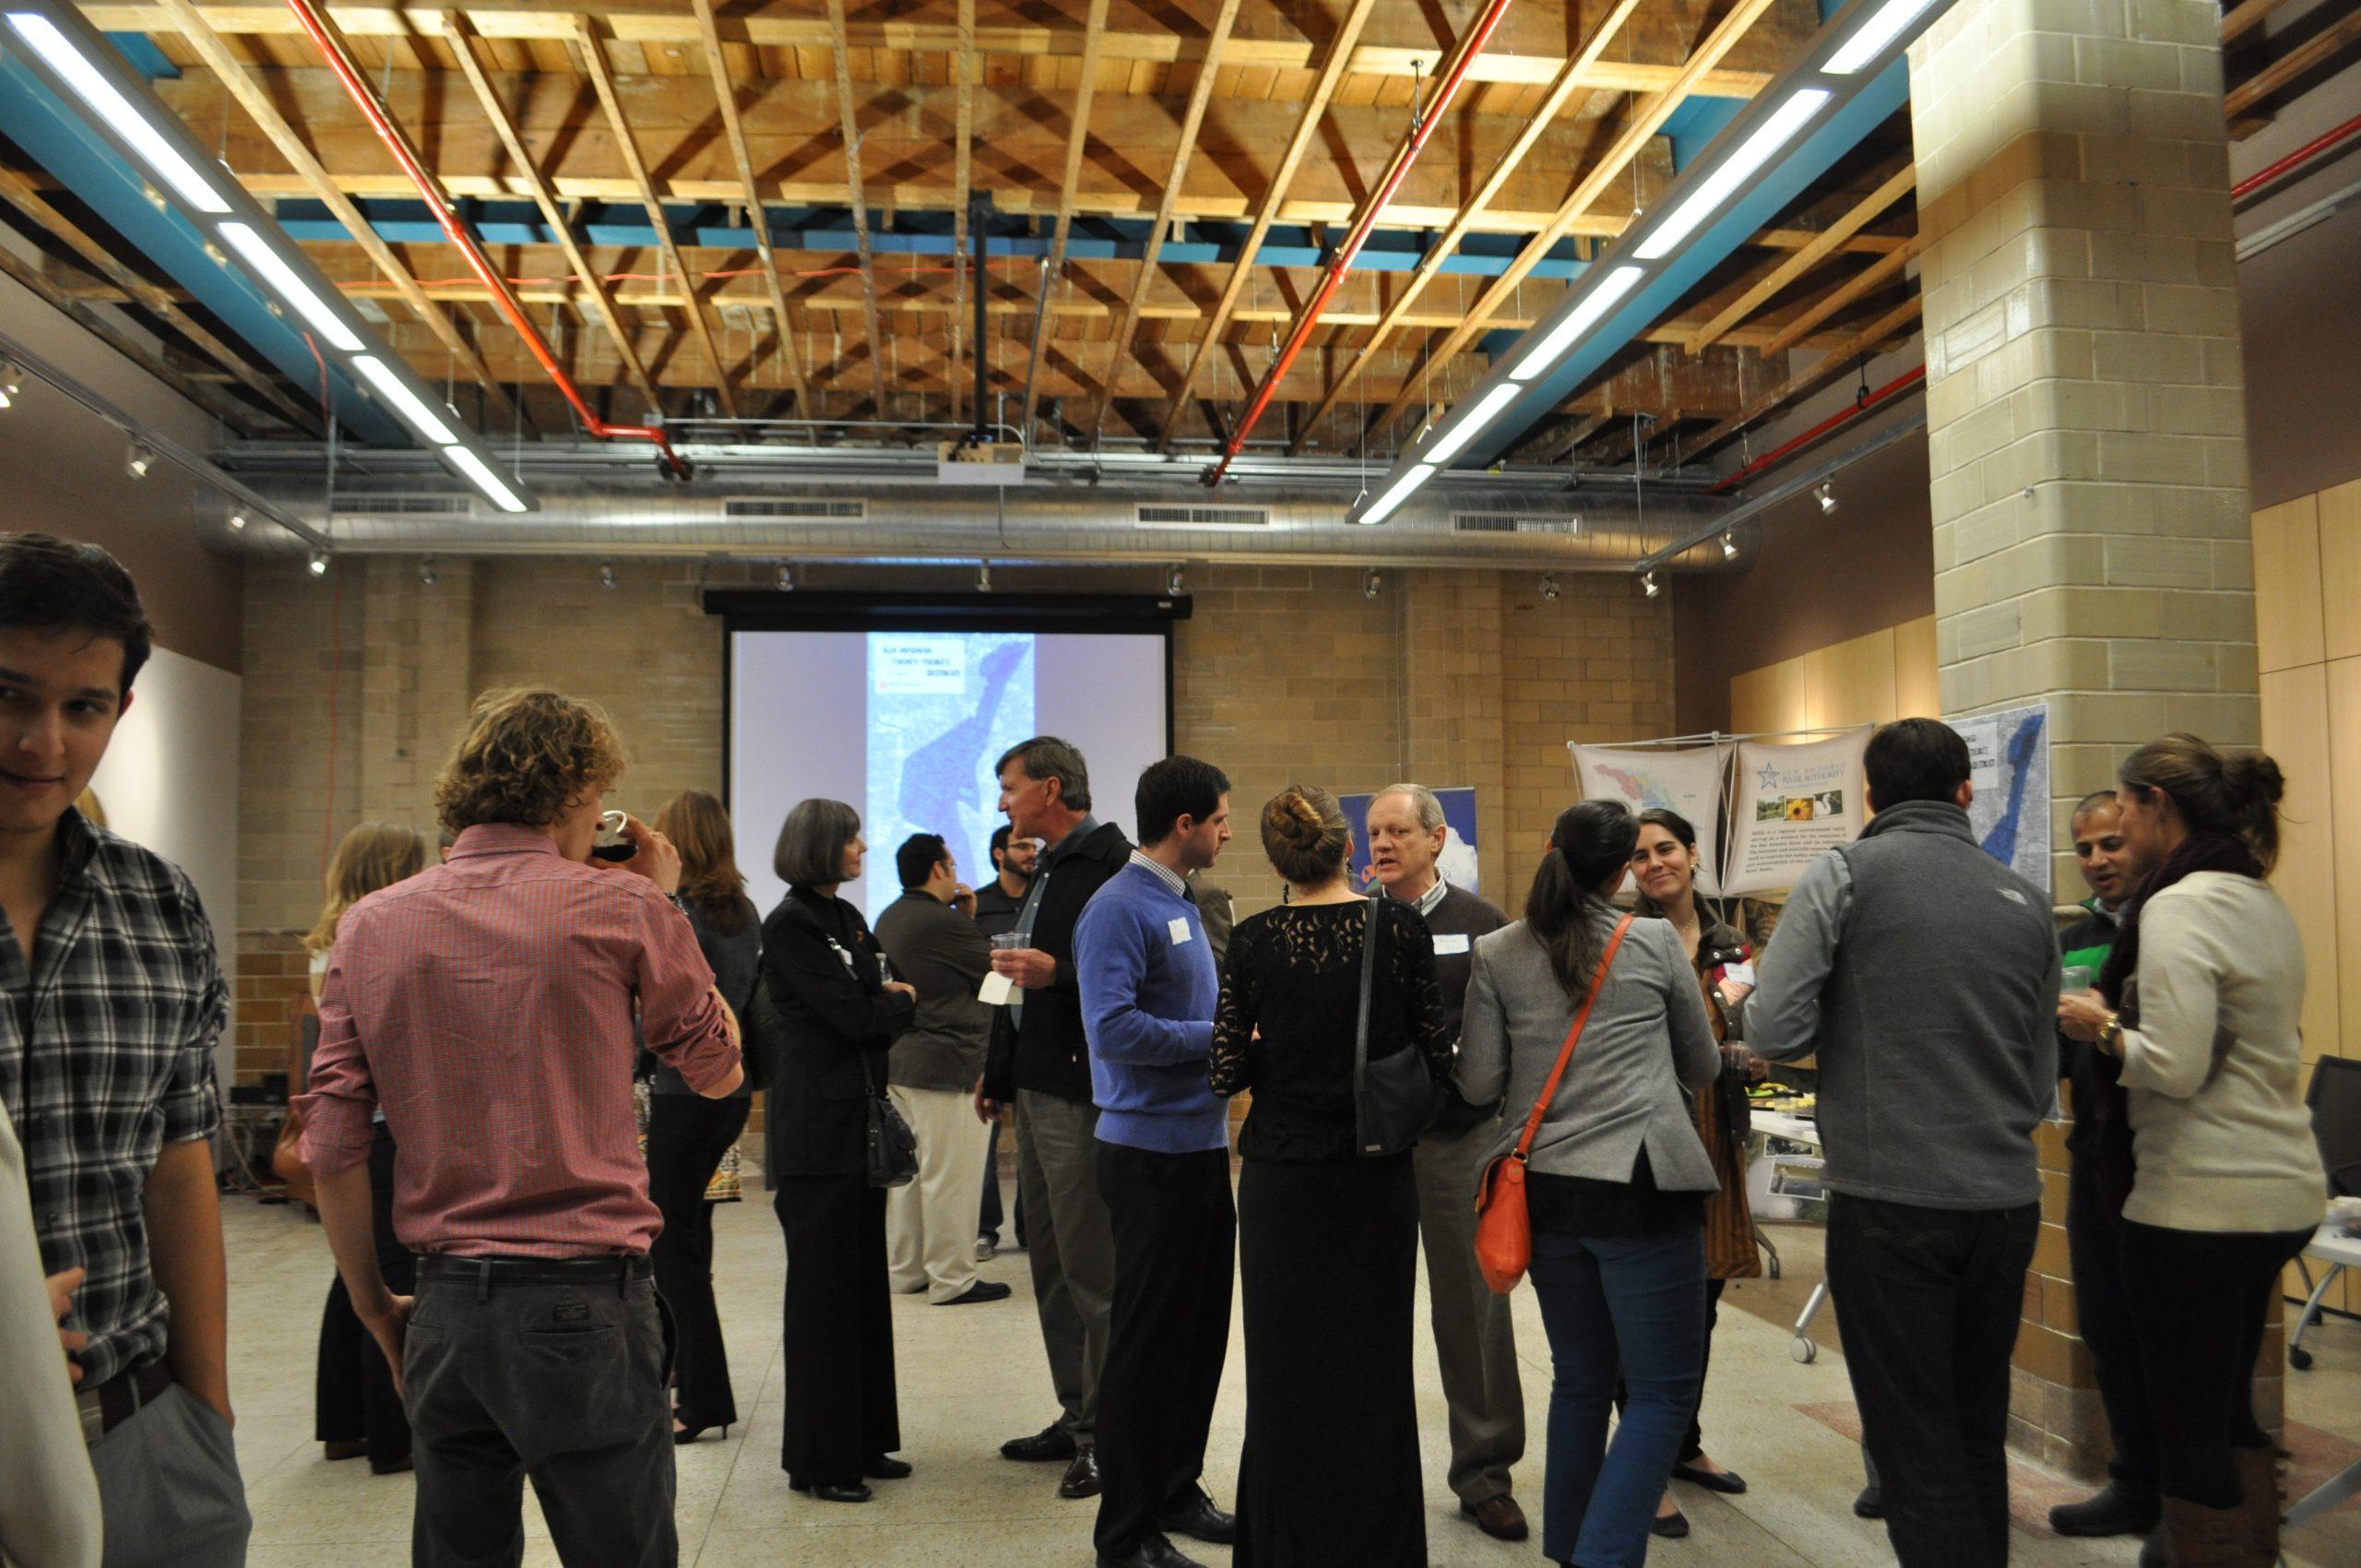 Attendees mingle as the San Antonio 2030 District launch party winds down at the AIA San Antonio office. Photo by Iris Dimmick.